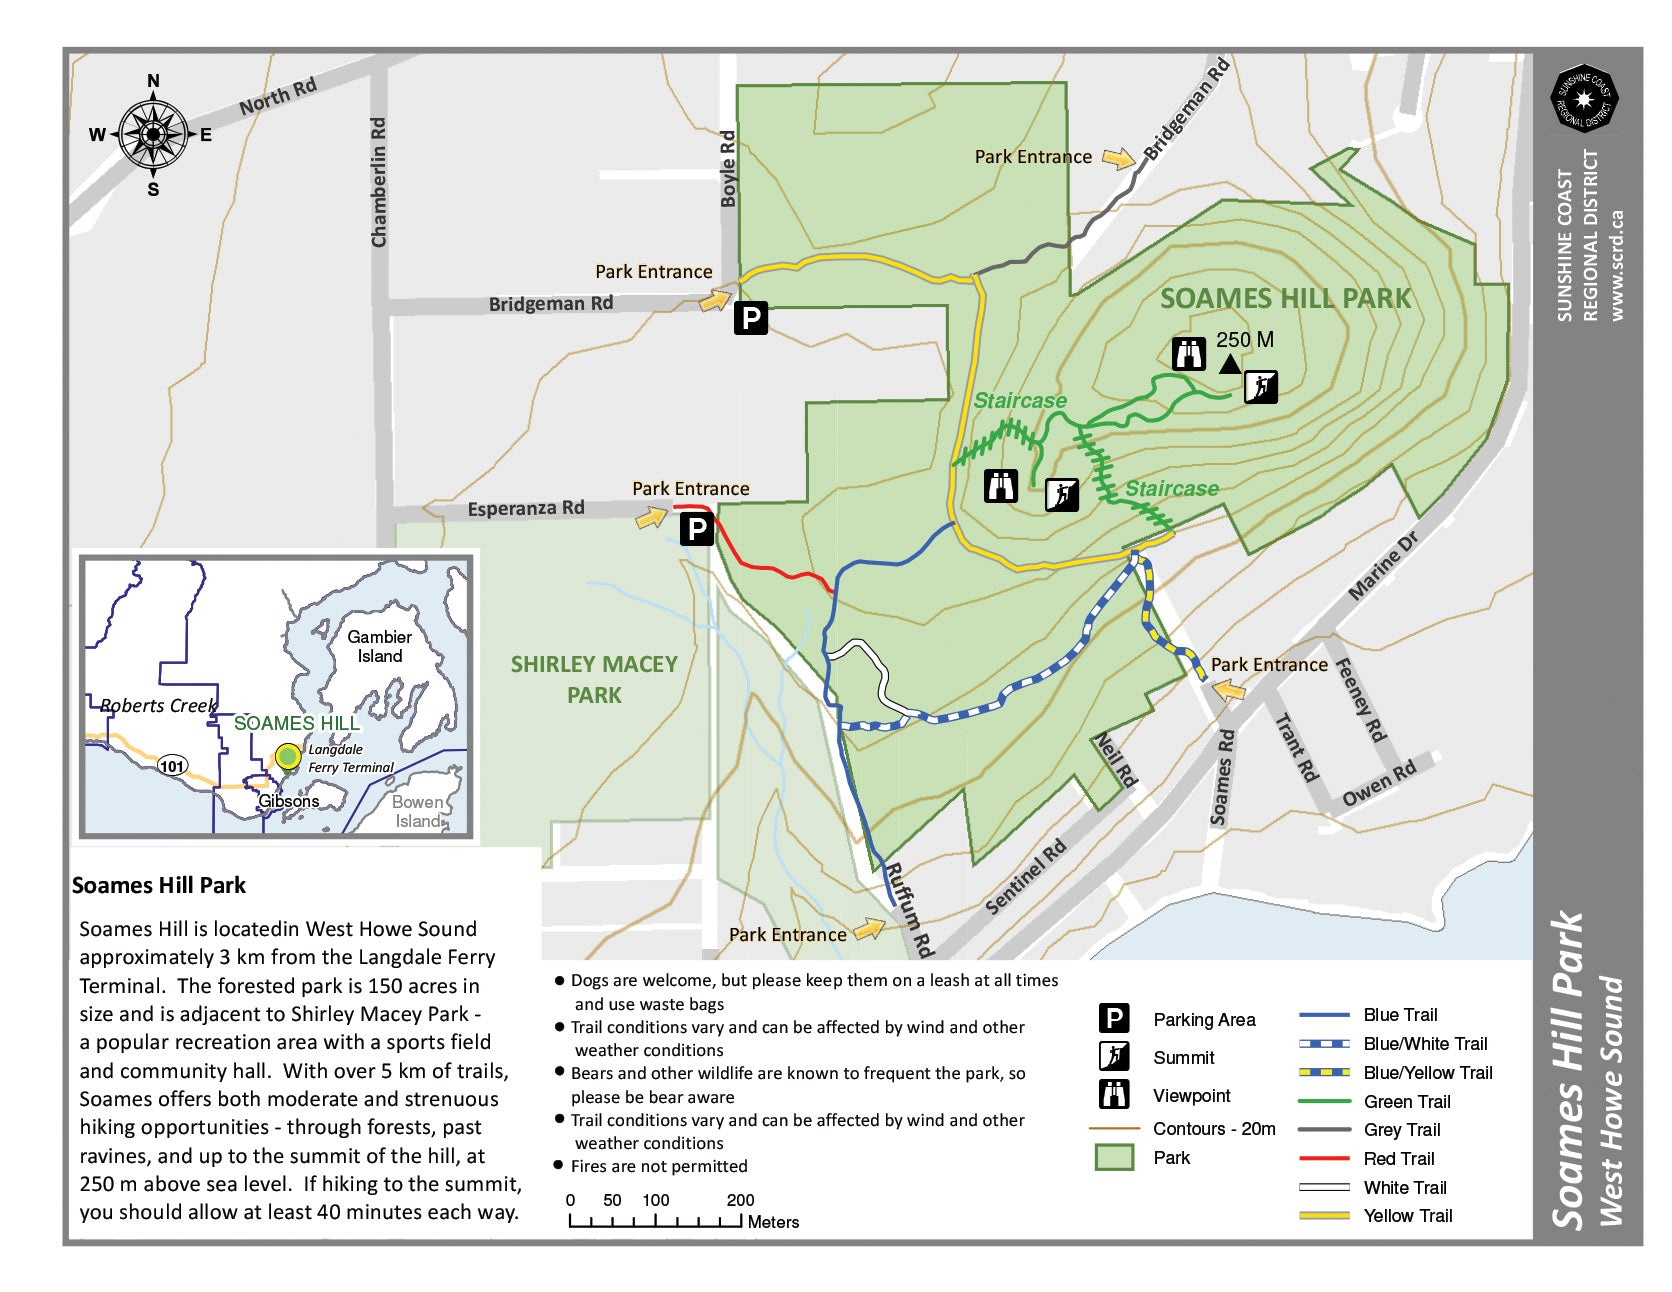 Soames Hill trail map